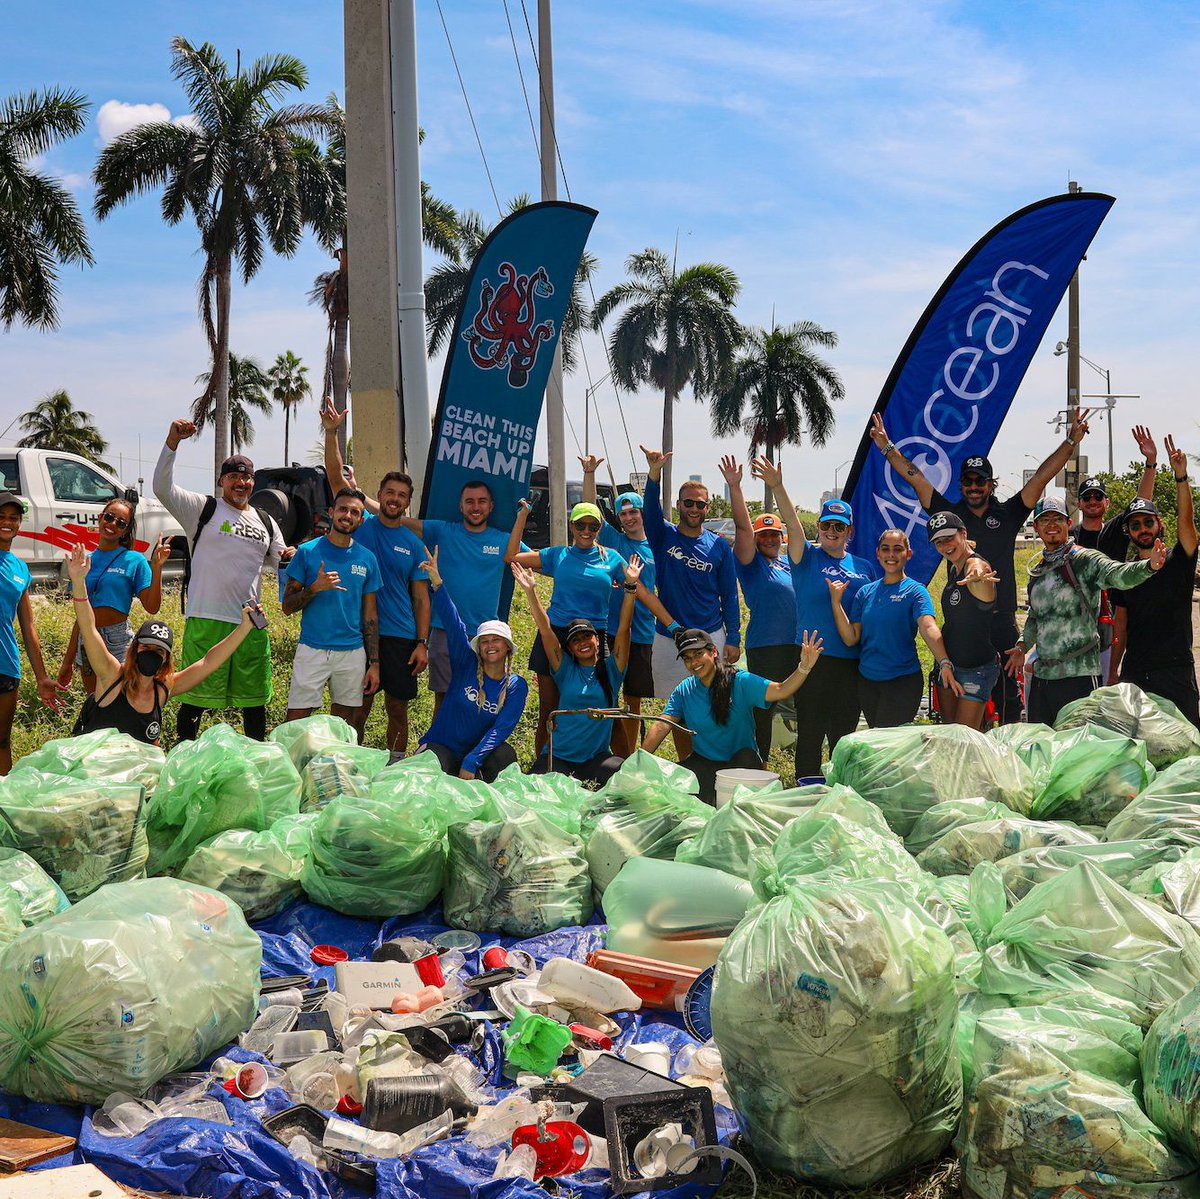 International Coastal Cleanup Day 2021 was a HUGE success! In Florida, 4ocean joined Clean This Beach Up for a cleanup in Miami. With 126 volunteers we were able to recover 1,375 pounds of trash, most of which comes from the port and construction sites on the water.